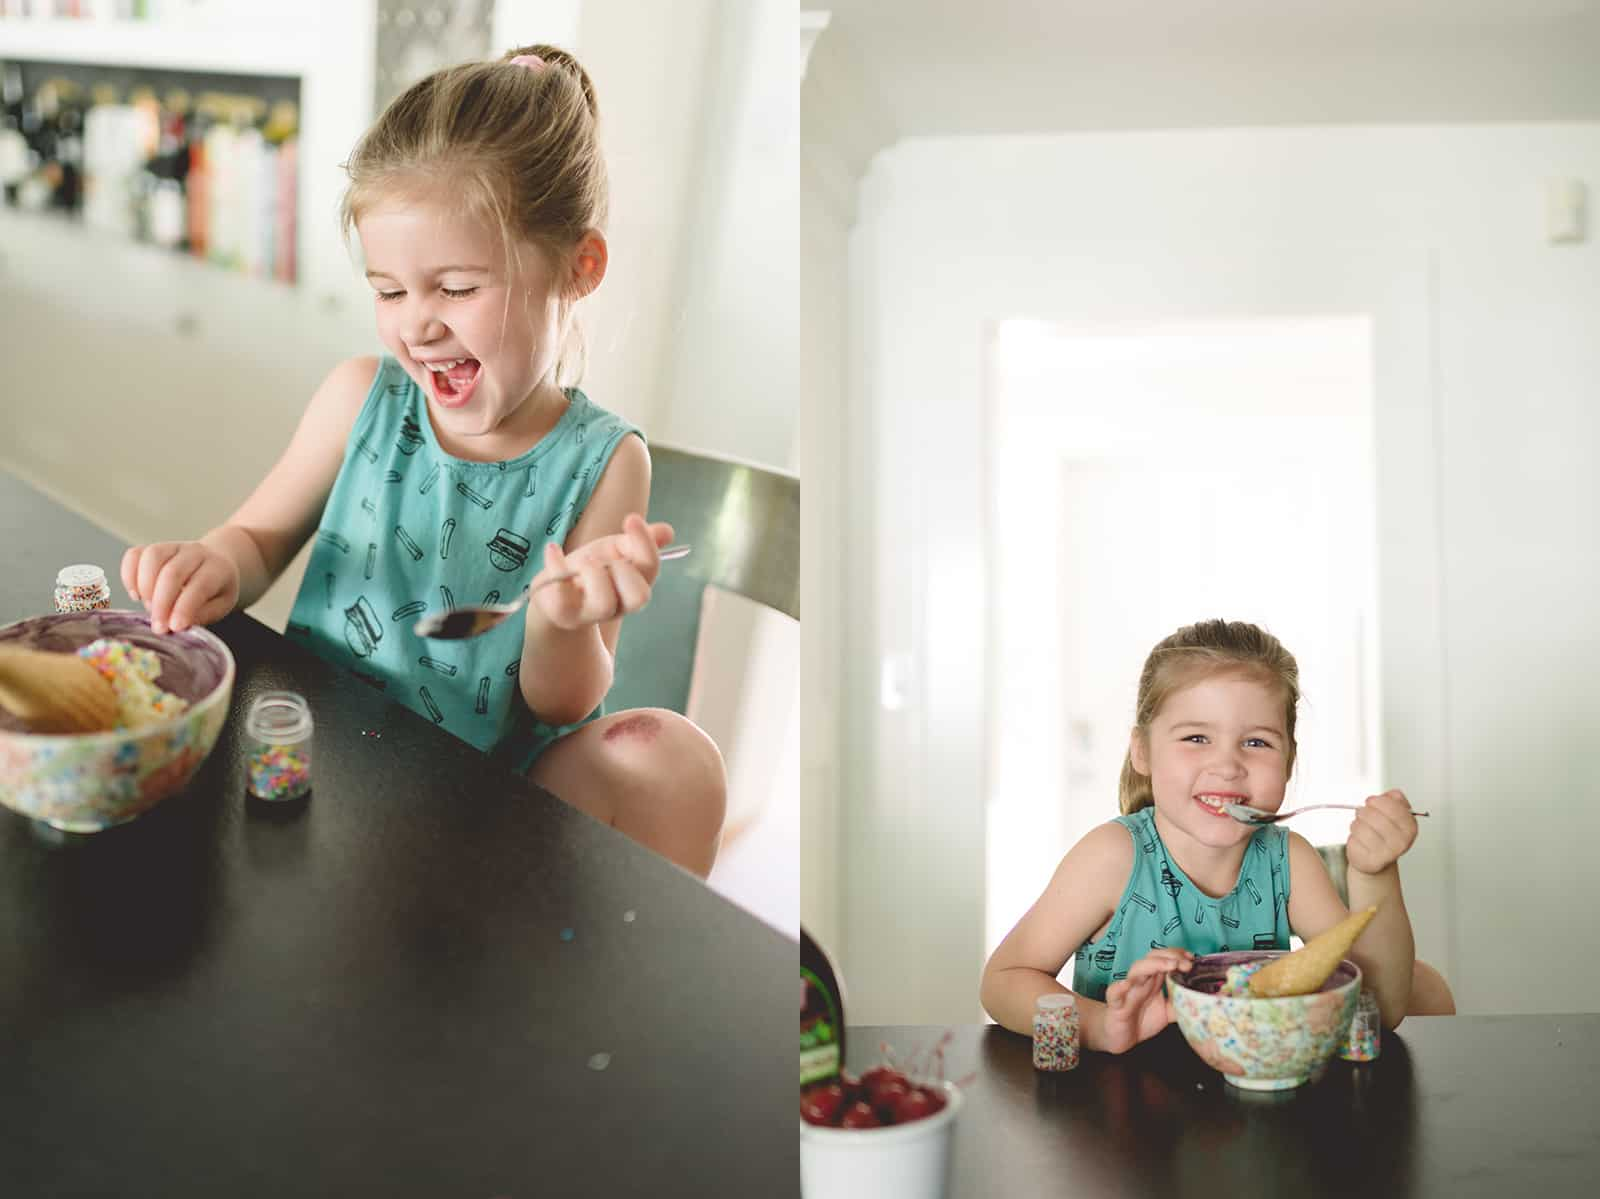 I Scream For Ice Cream by Tiffani Thiessen • Photography by Rebecca Sanabria